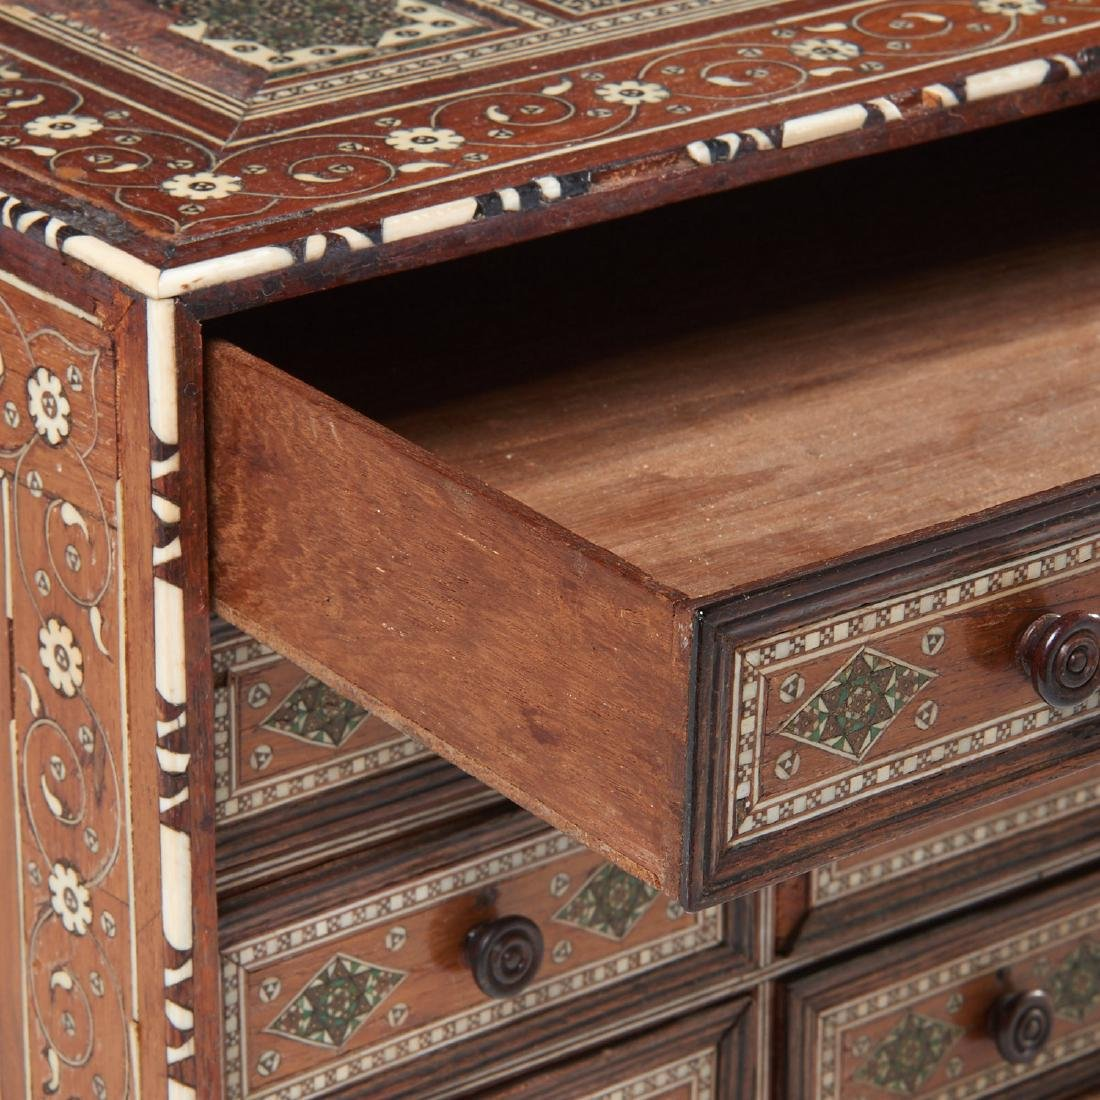 Damascus inlaid tabletop chest of drawers - 2